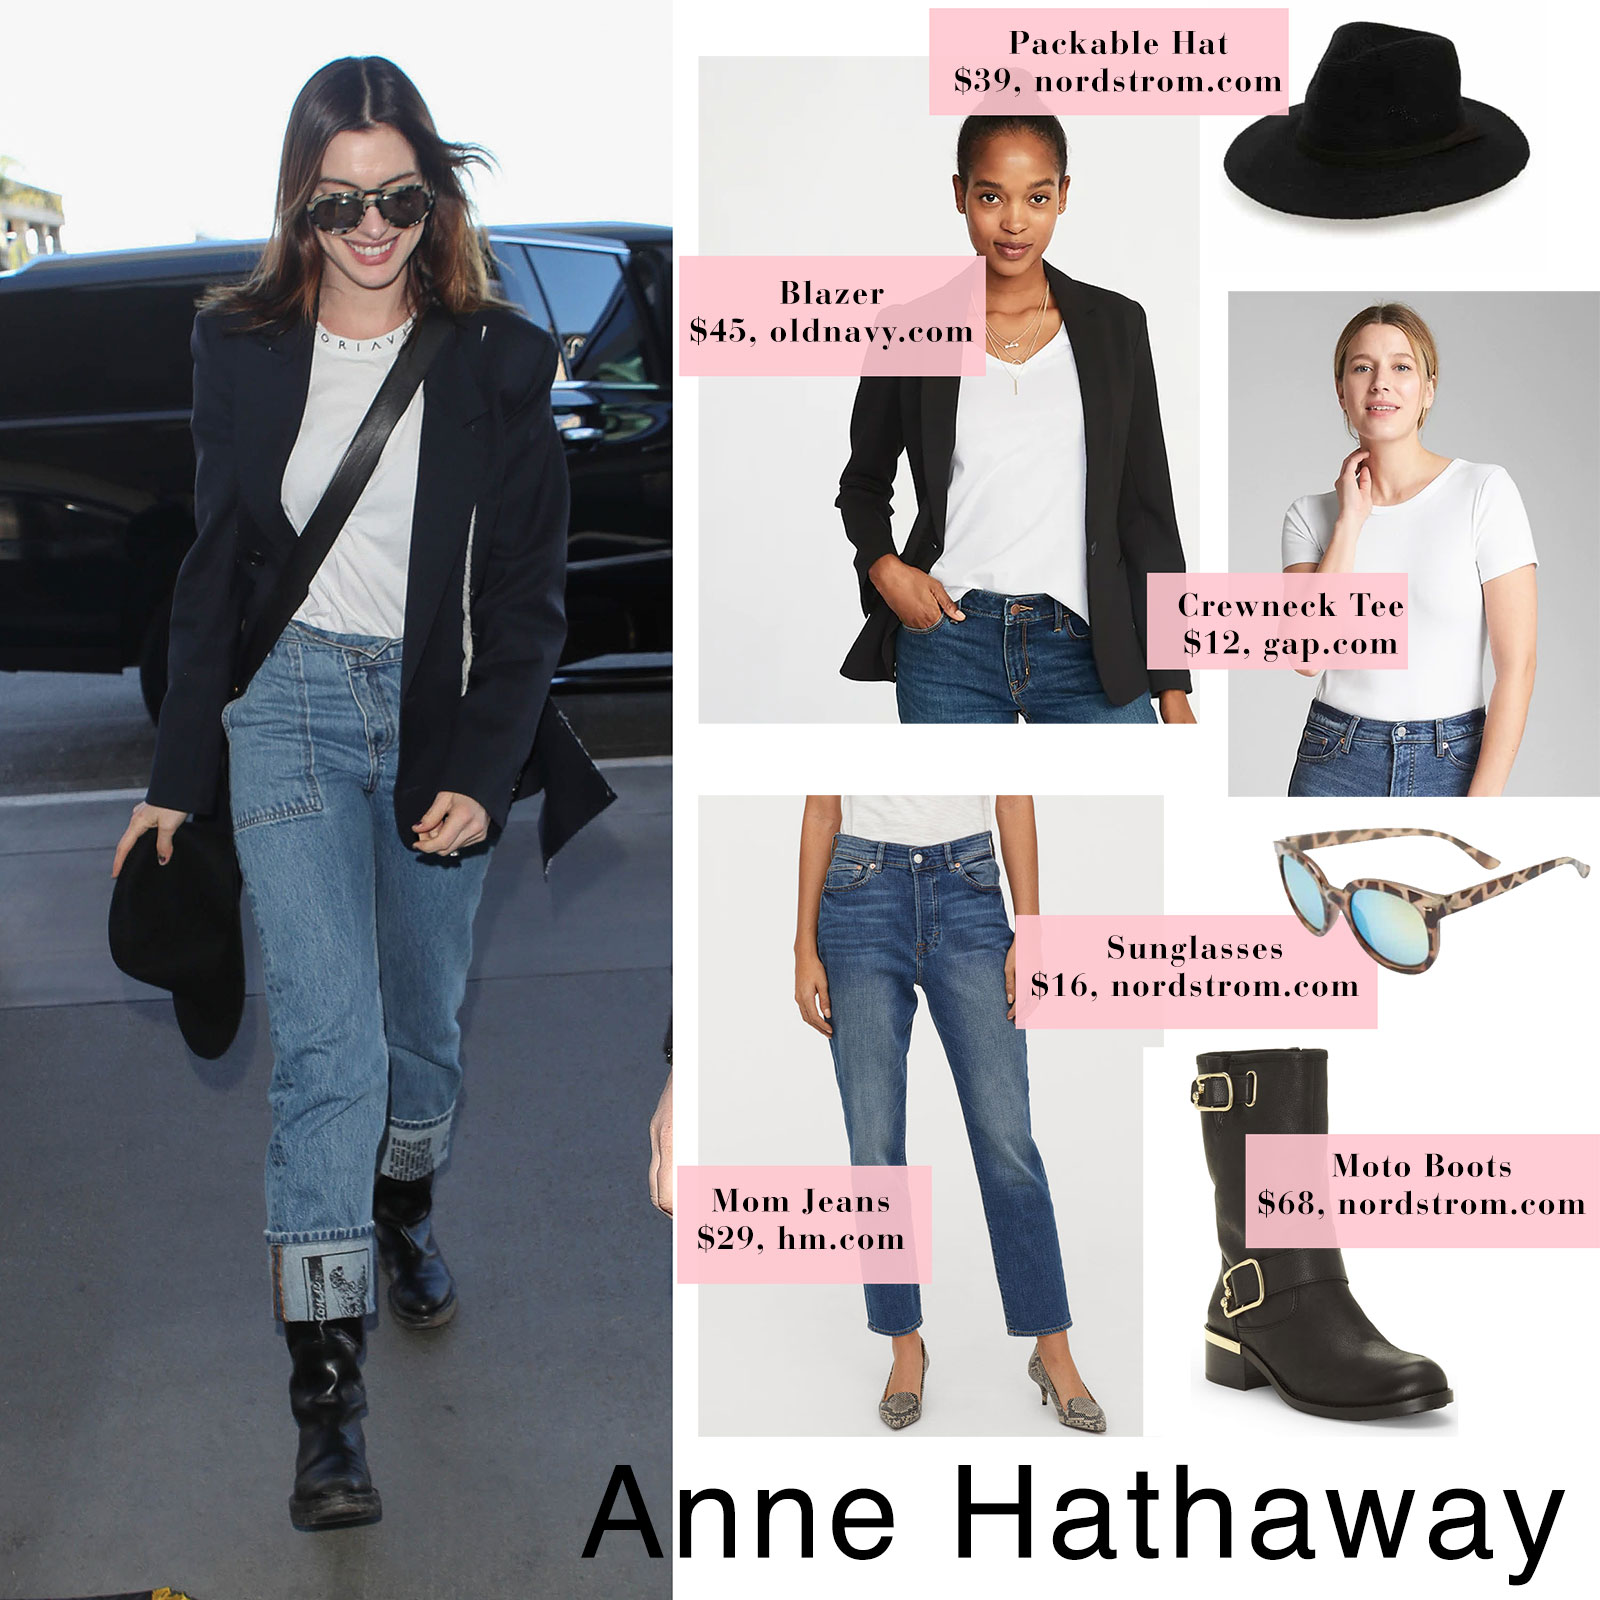 Anne Hathaway's classic airport style